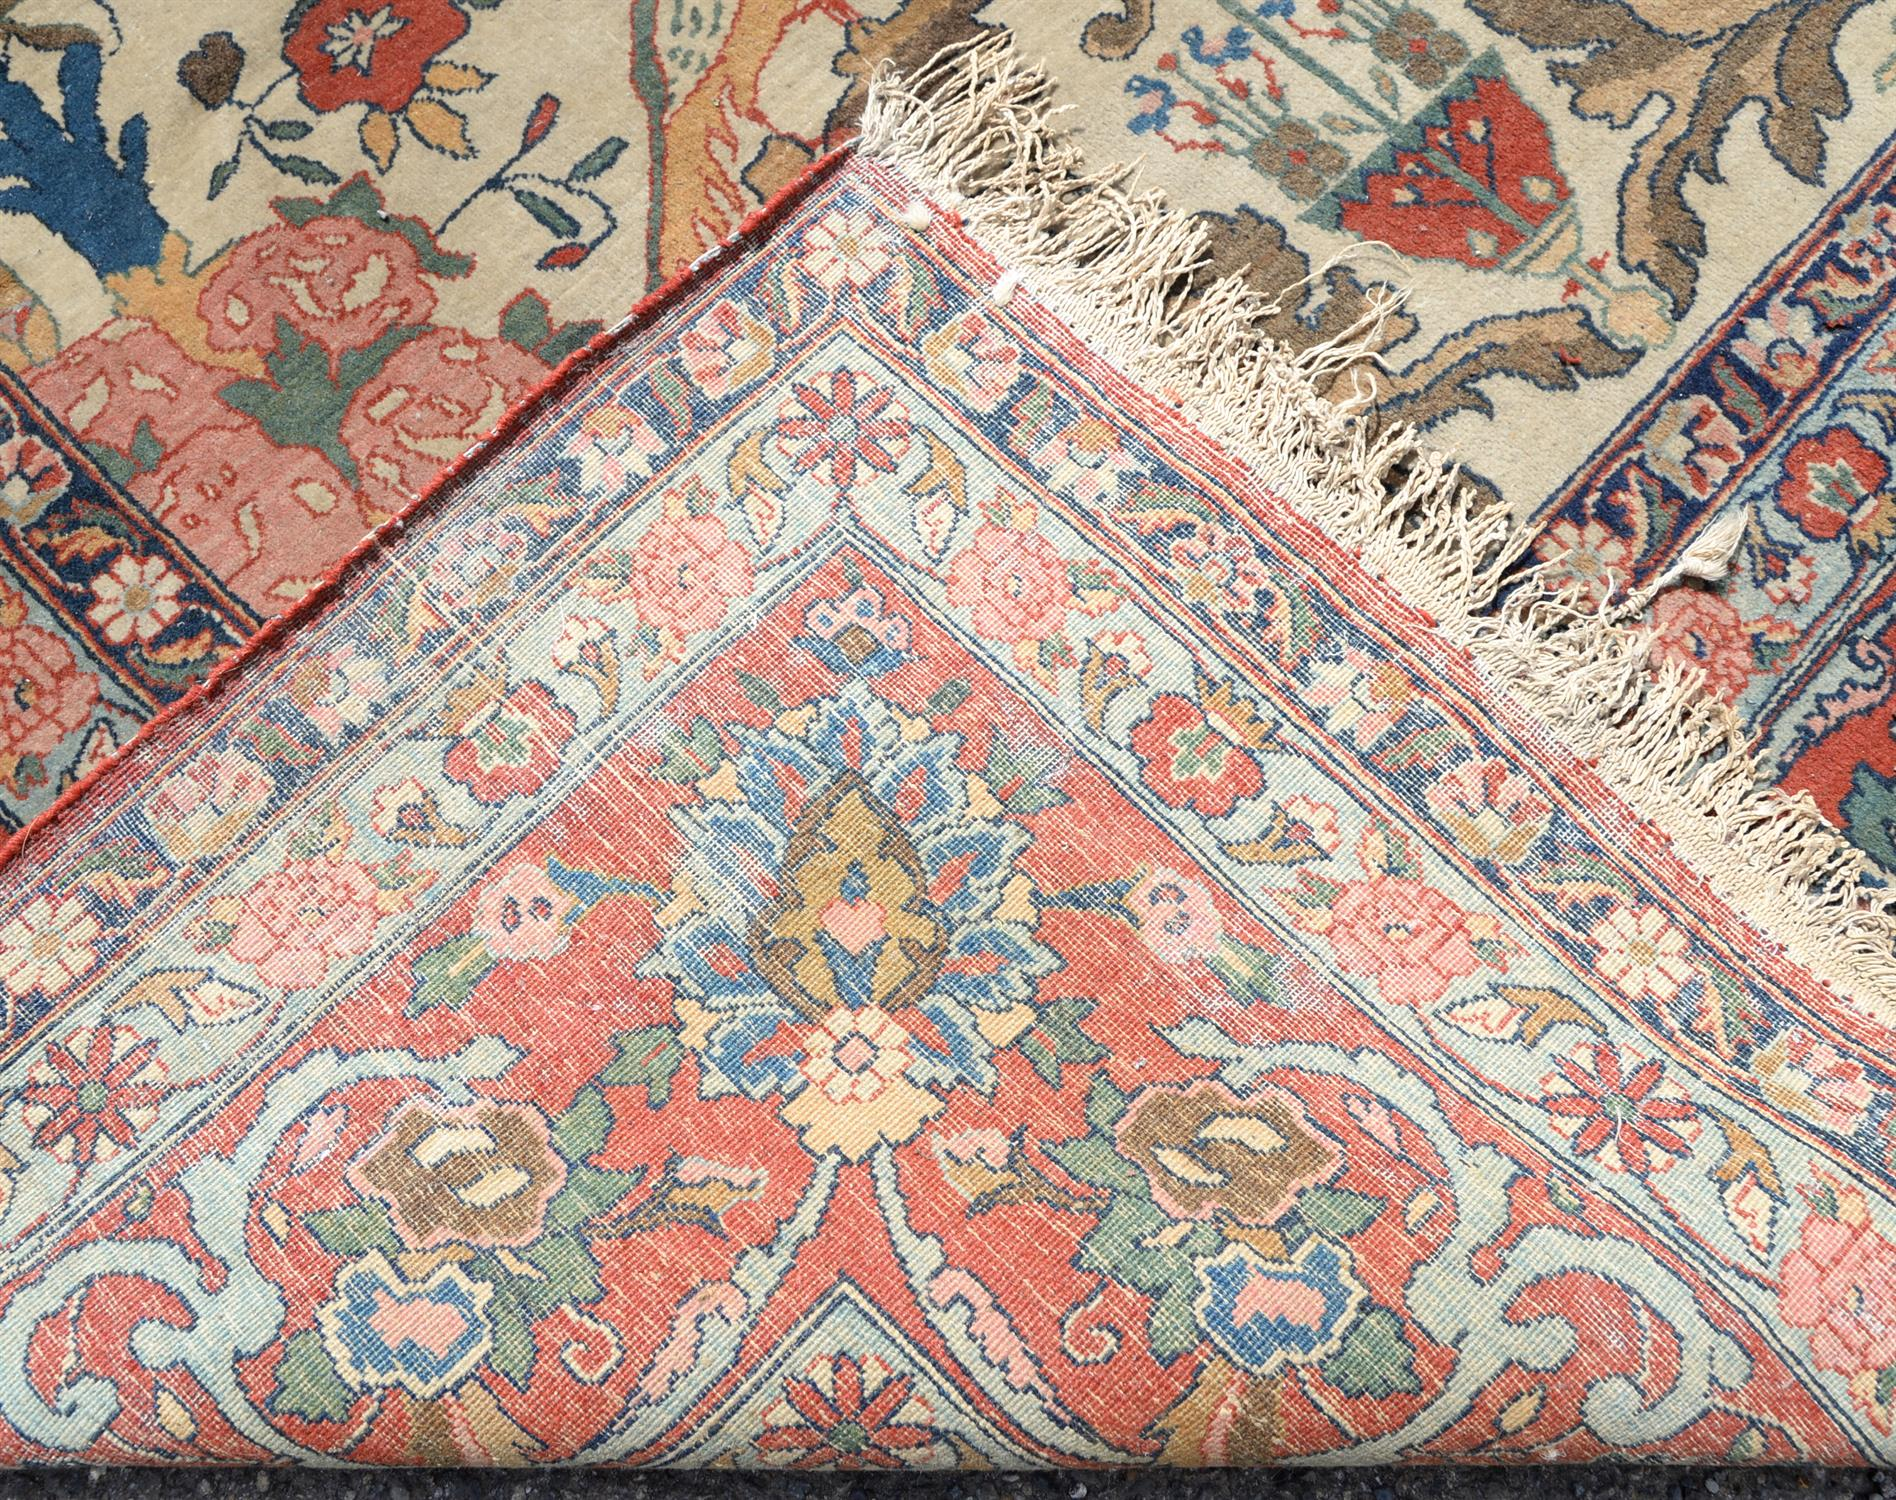 Persian carpet decorated with floral urns, birds and flowers within a floral border, 330 x 238cm - Image 2 of 2